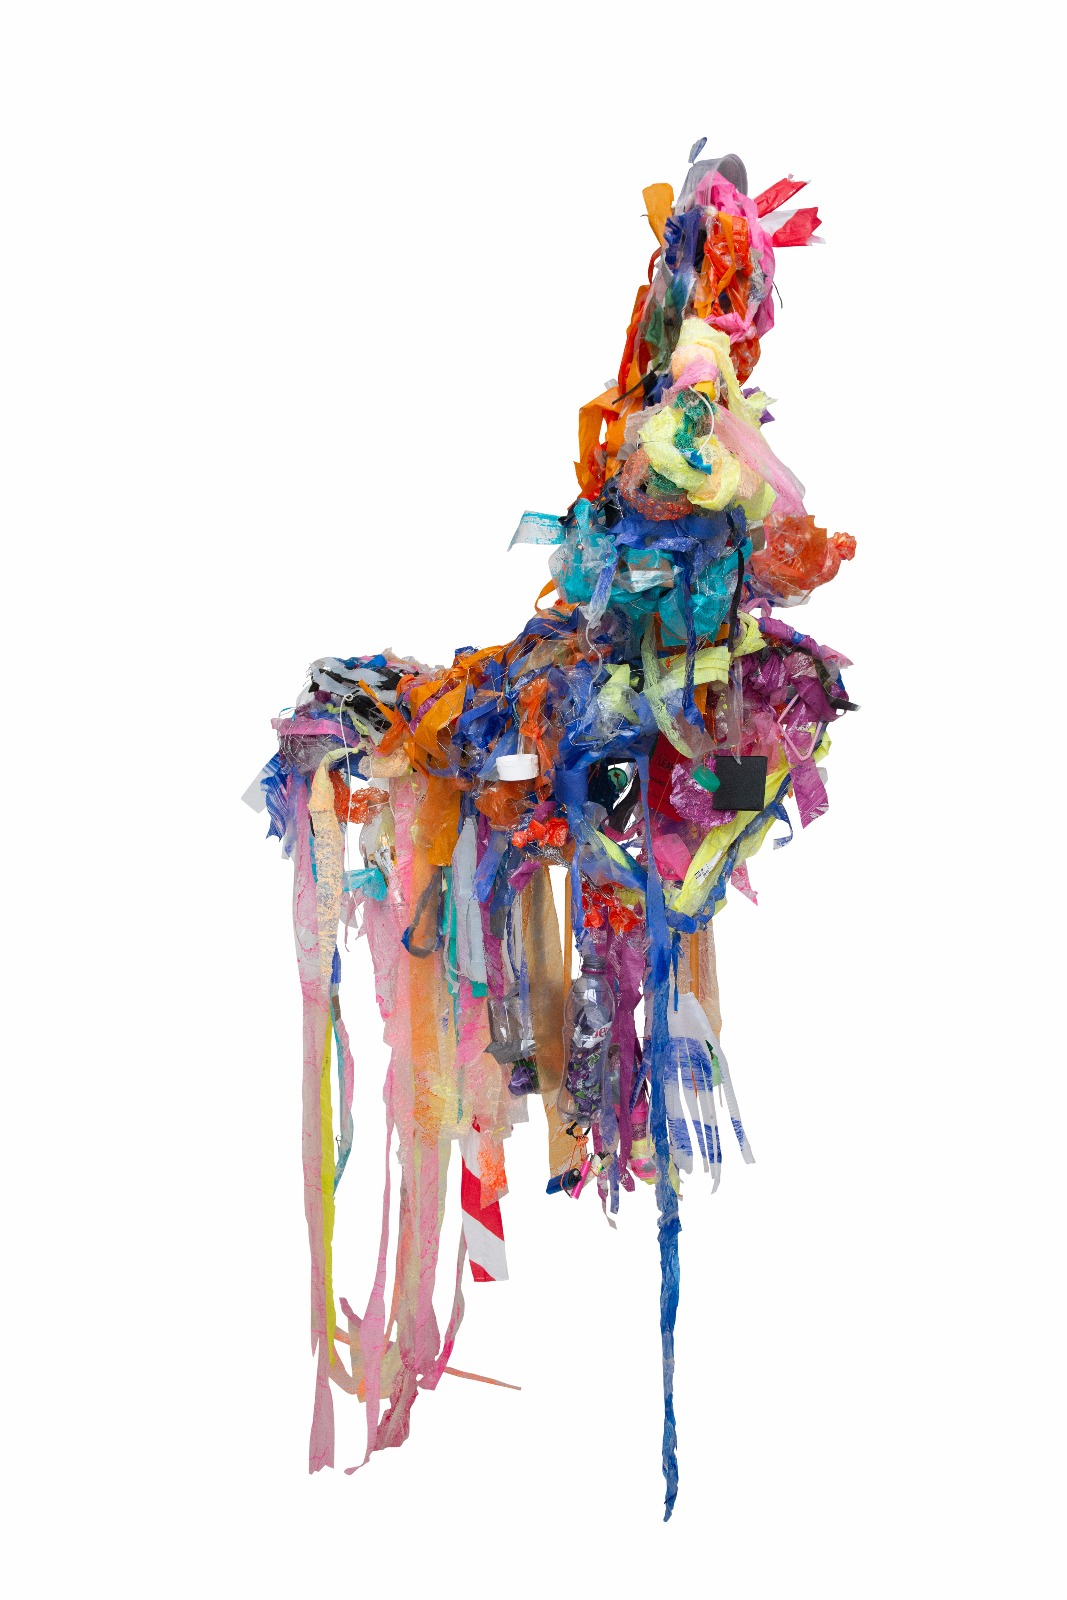 130x160x30cm (approx), Canal plastic, un-recycled plastic streamers, chicken wire, coat hangers, string and acrylic. Product of workshops and completed by the artist, 2018.